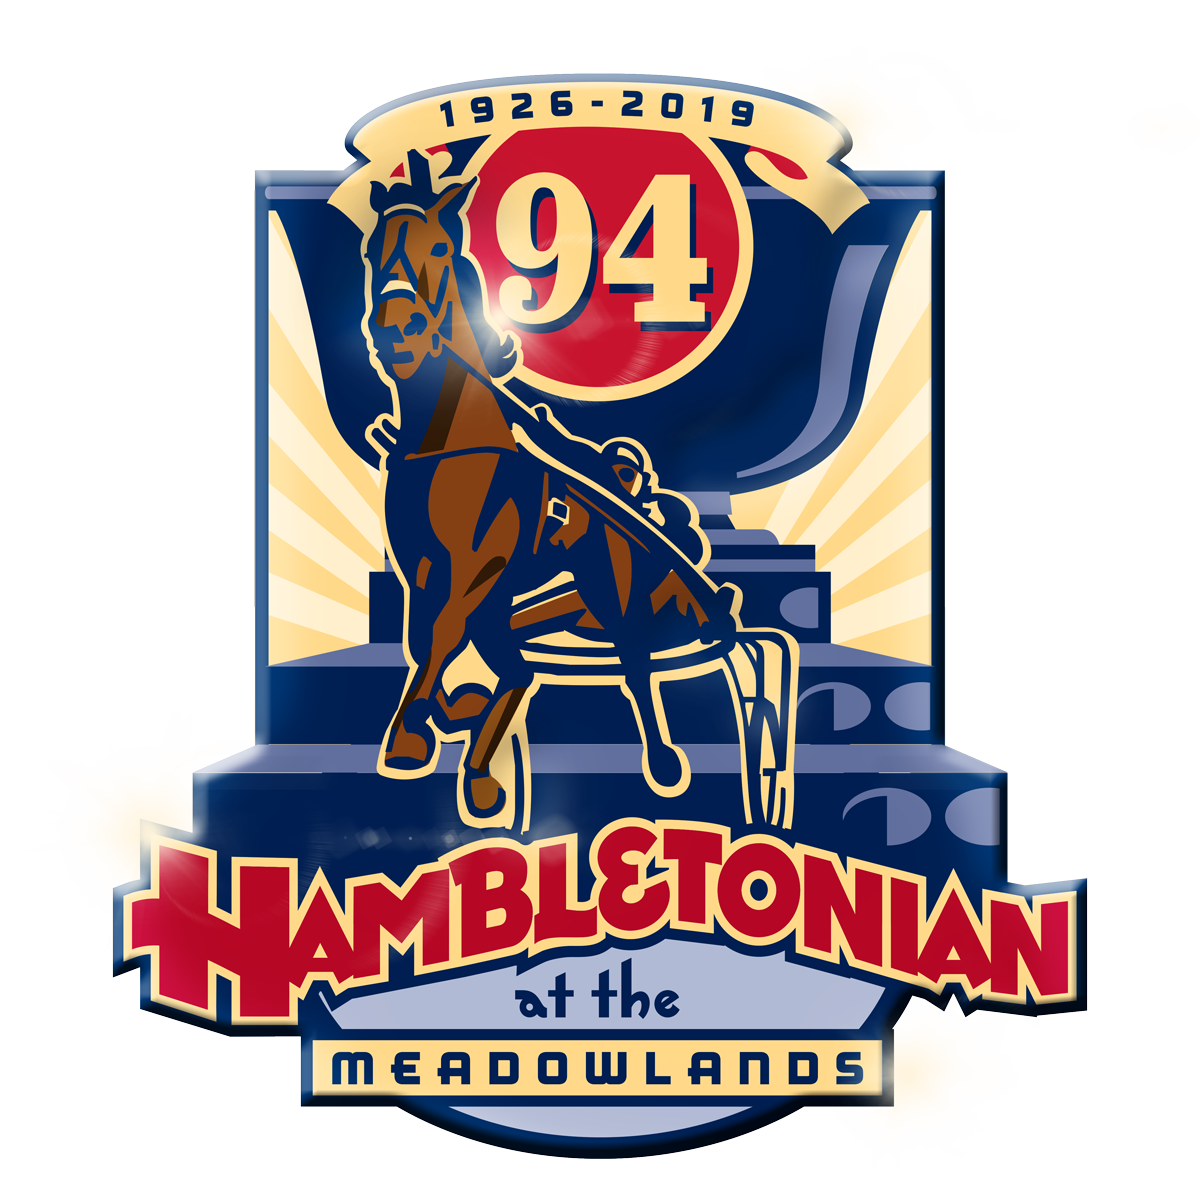 Hambletonian Society